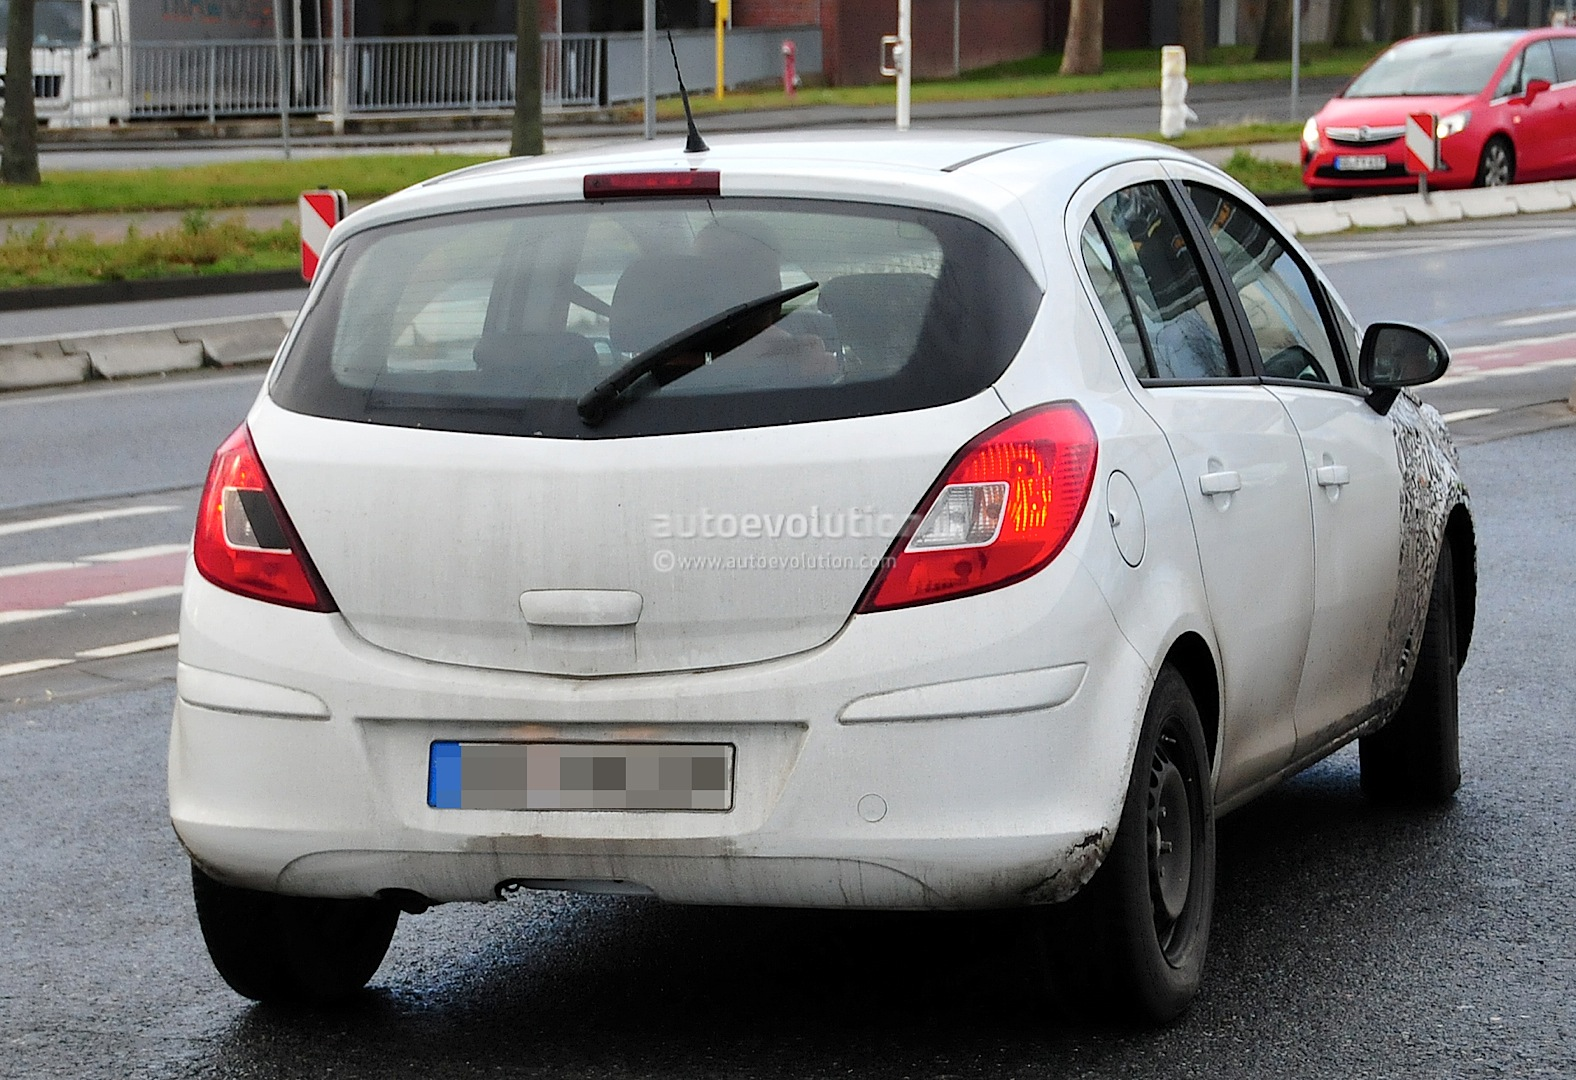 Spyshots 2014 opel corsa facelift interior new dash and for Interior opel corsa